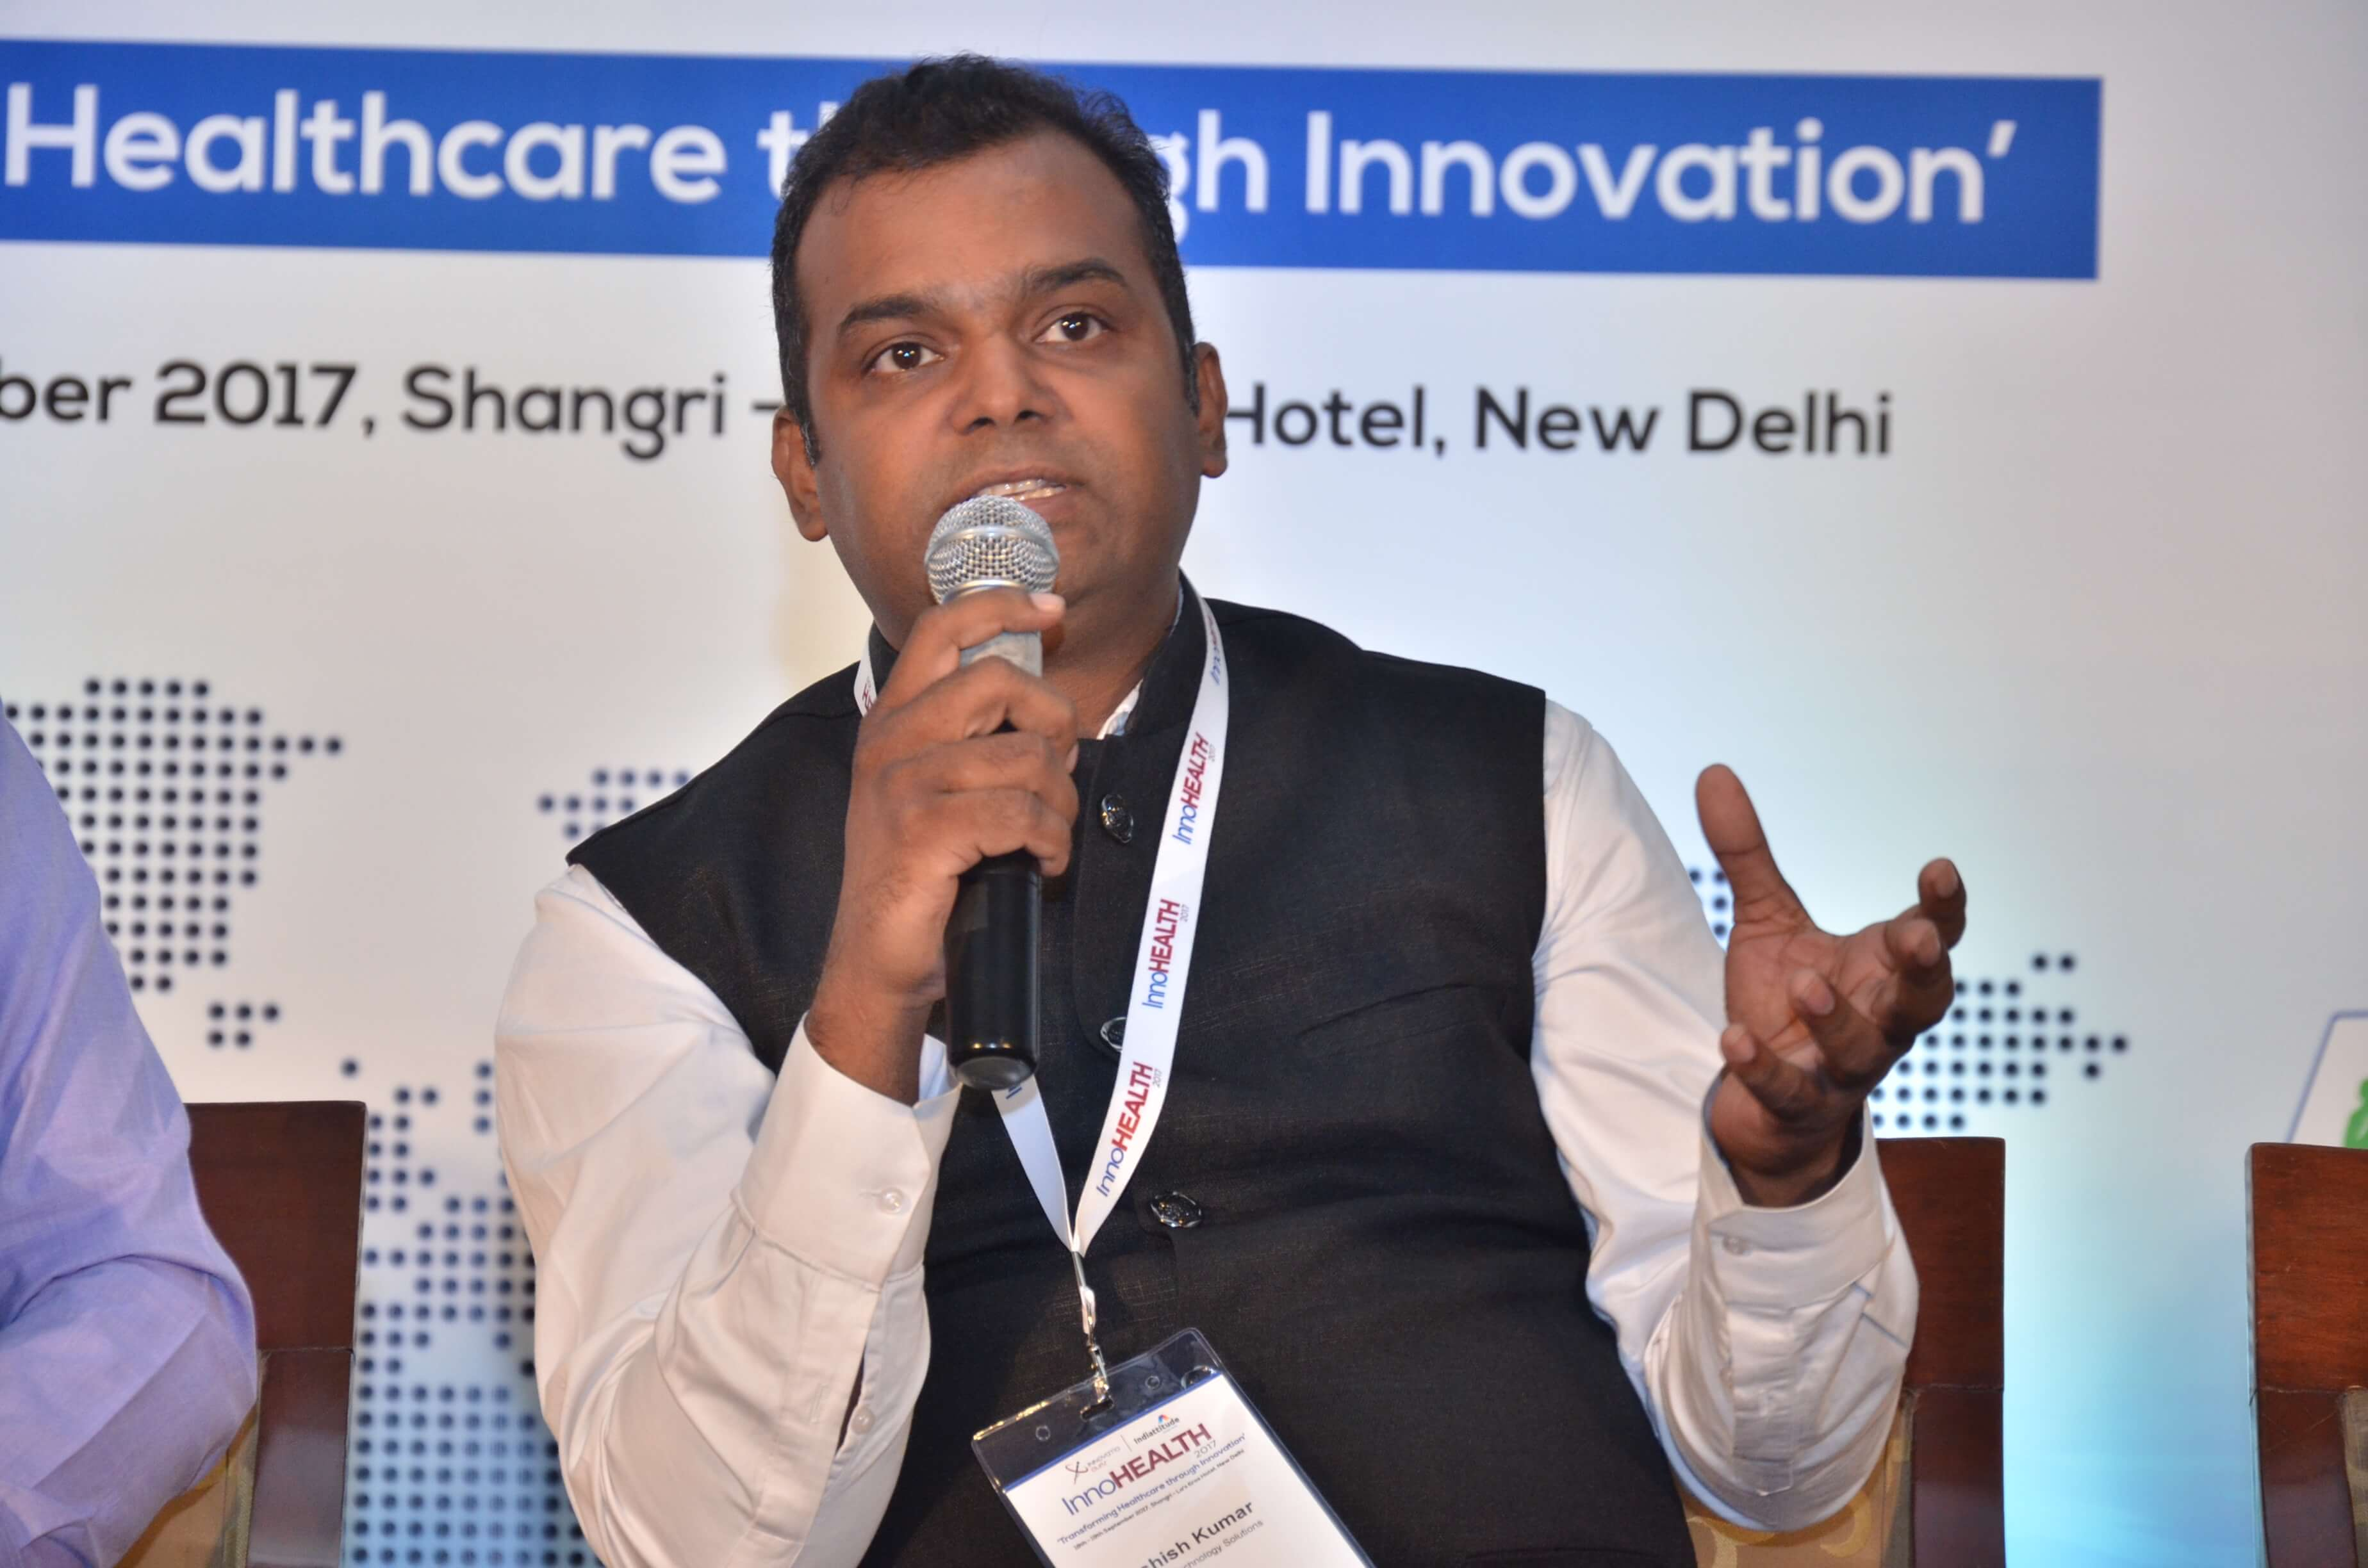 Ashish Kumar sharing his views on innovations in pharma sector at InnoHEALTH 2017